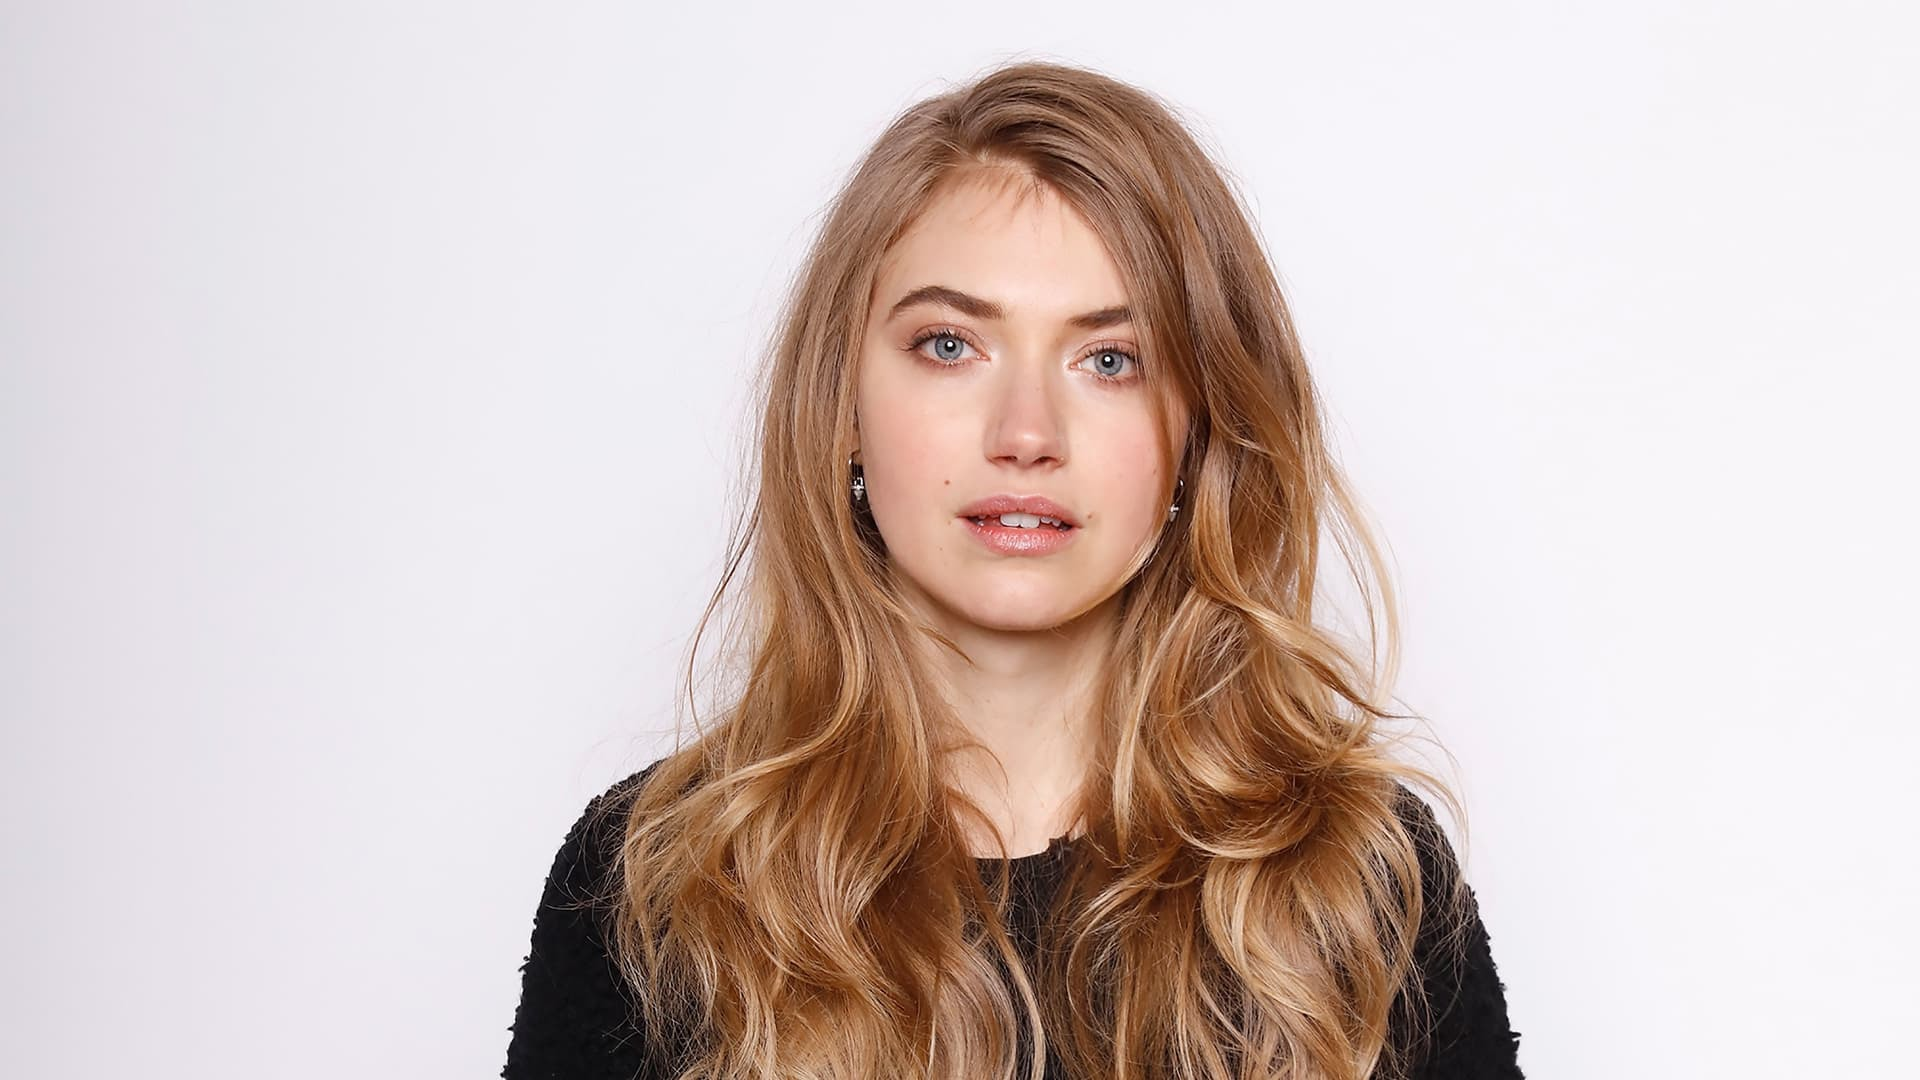 Imogen Poots Hd Wallpaper